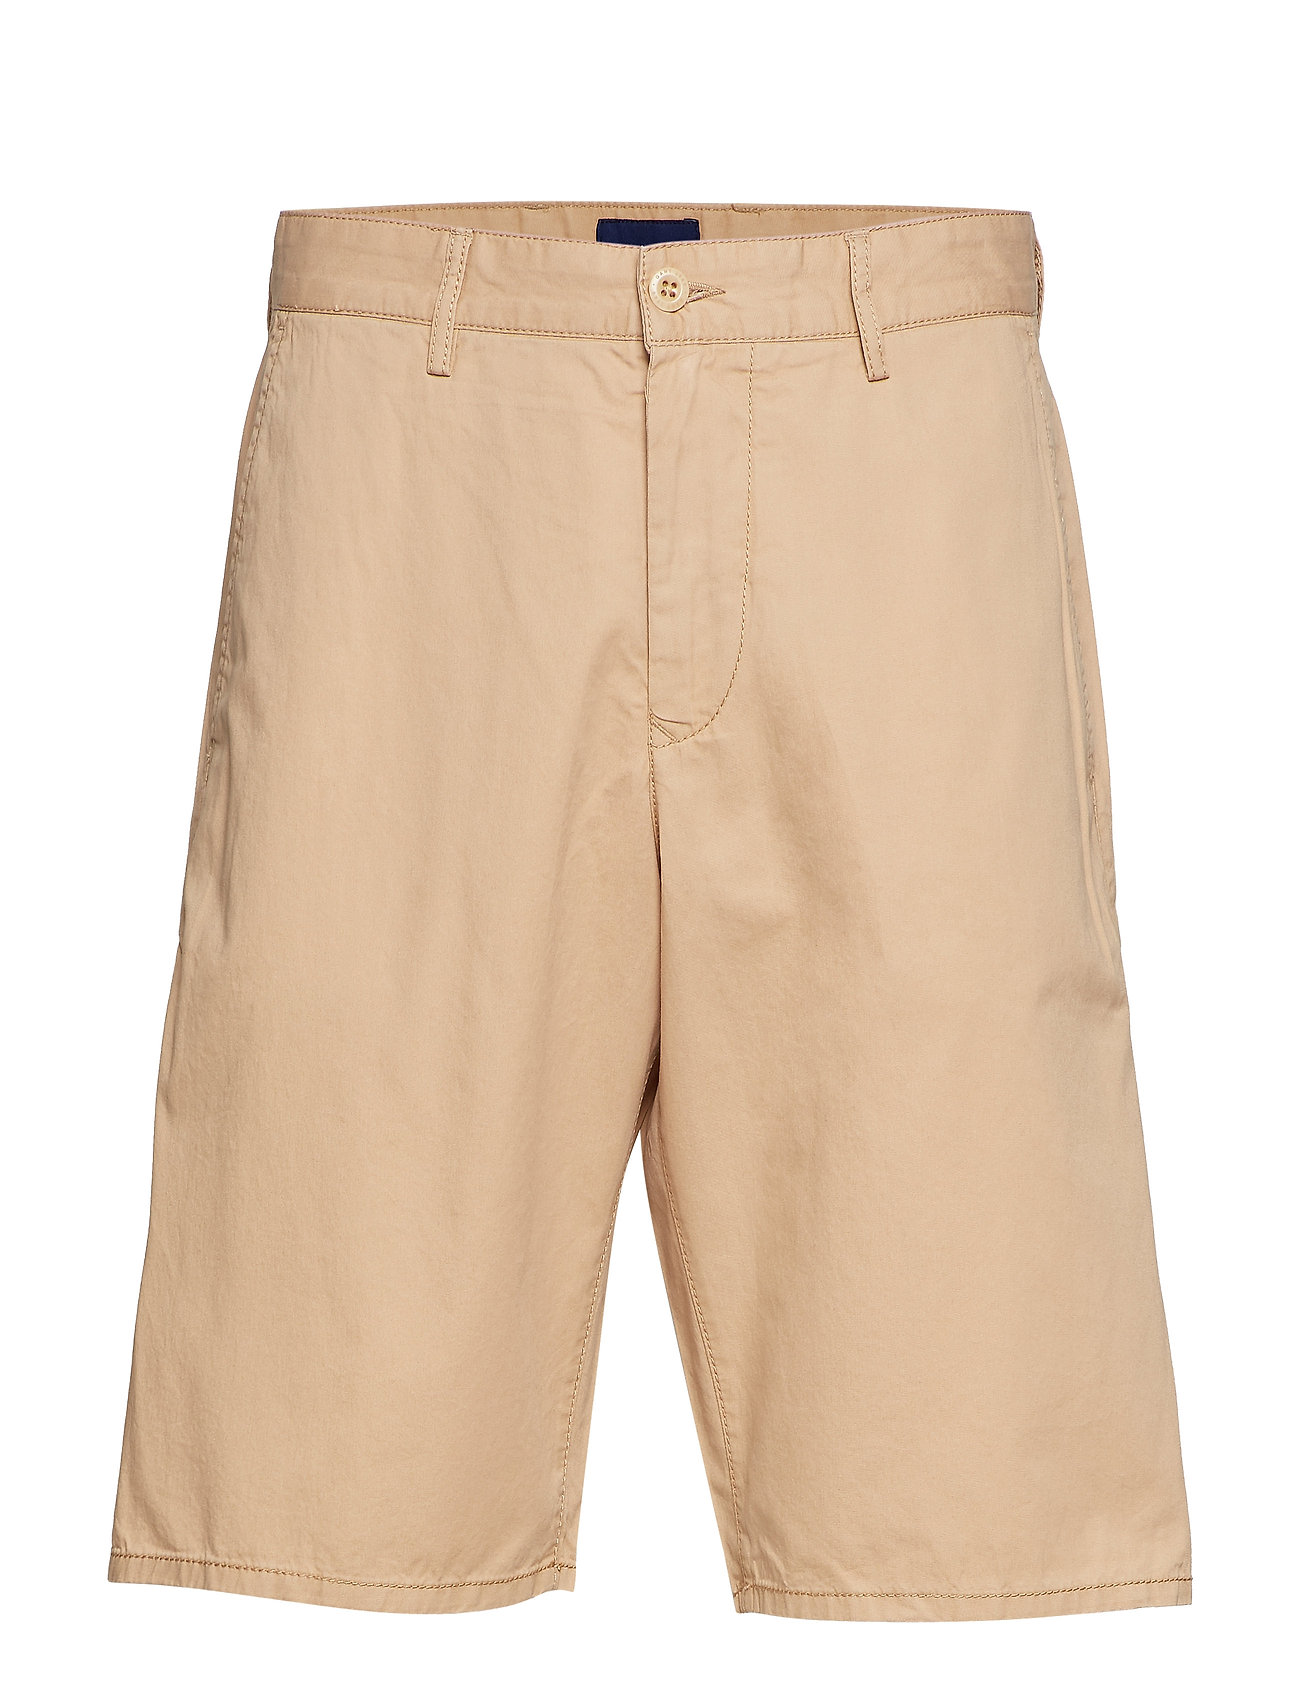 Gant MD. RELAXED SUMMER SHORTS - DARK KHAKI